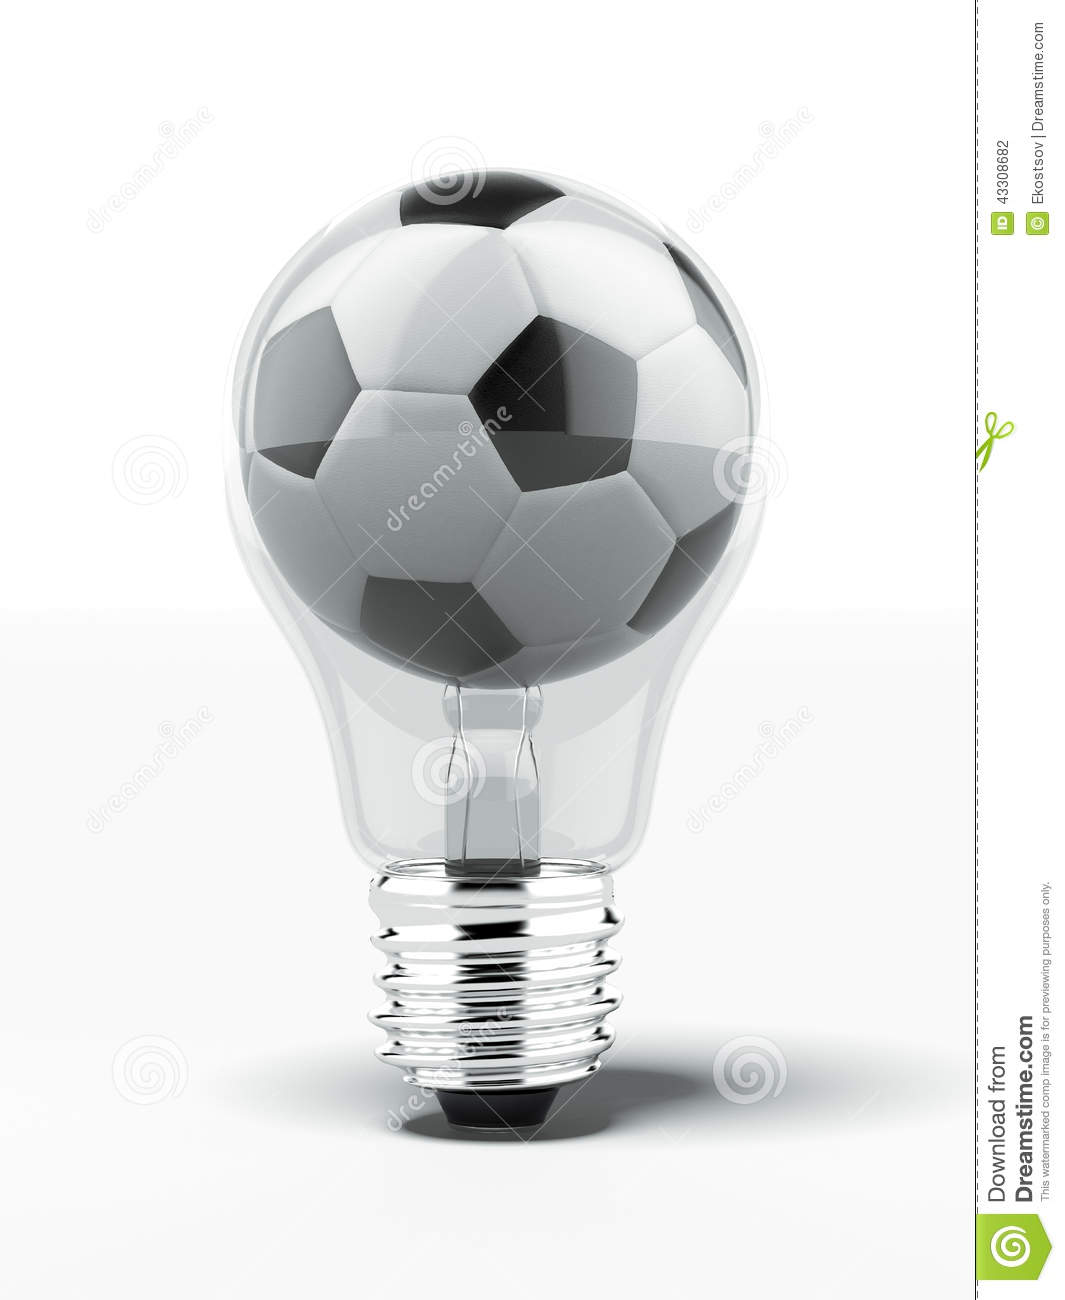 Conserve Electricity Lightbulb With Football Inside Stock Photo Image Of Conserve